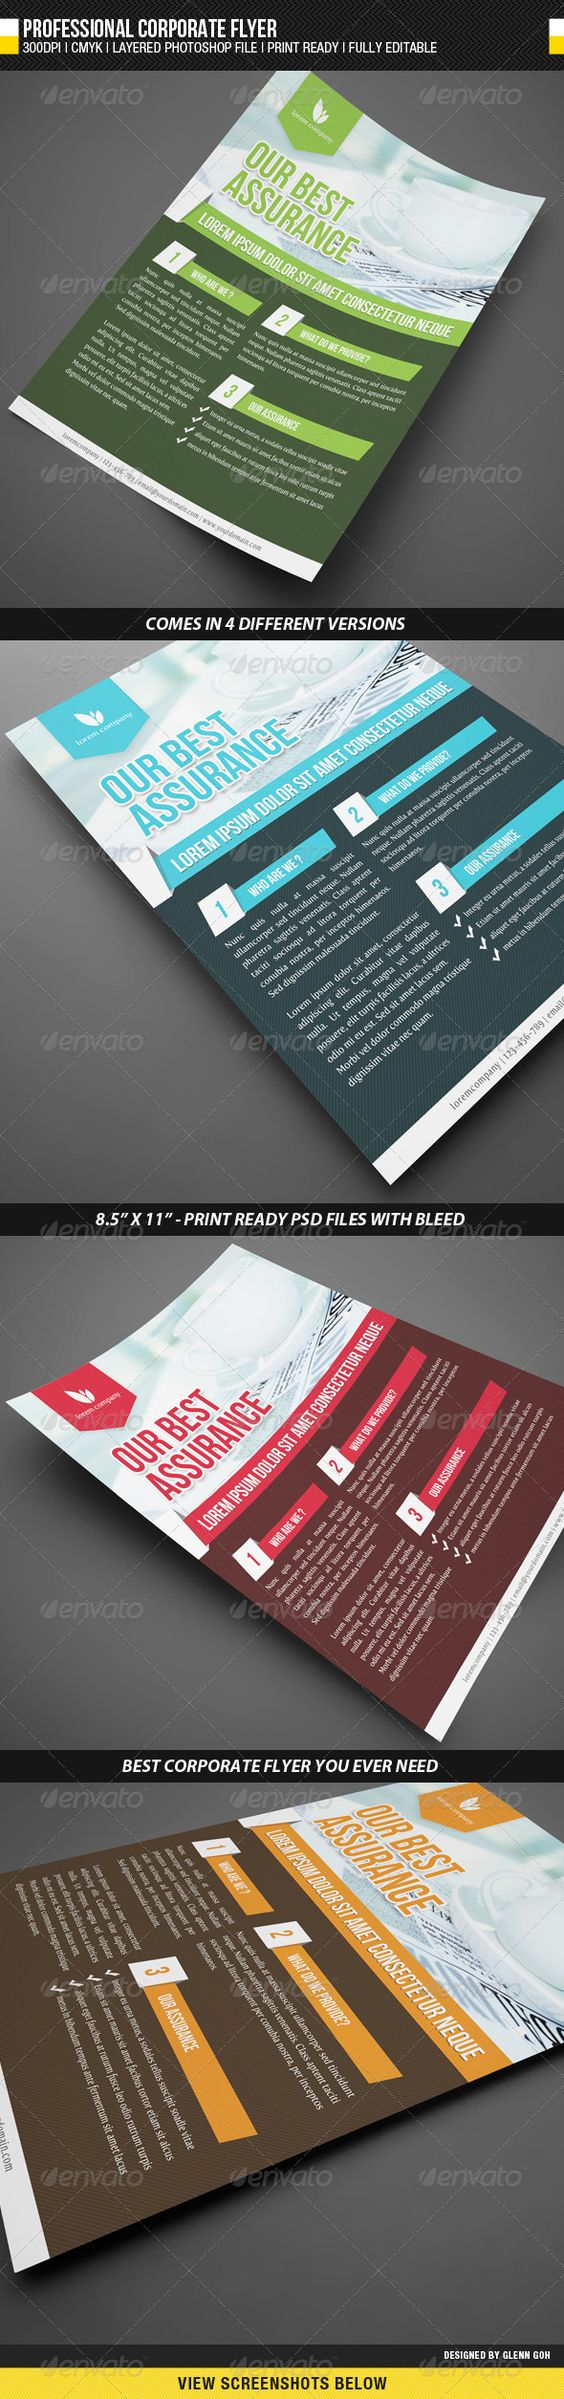 Professional Corporate Flyer – Professional Corporate Flyer